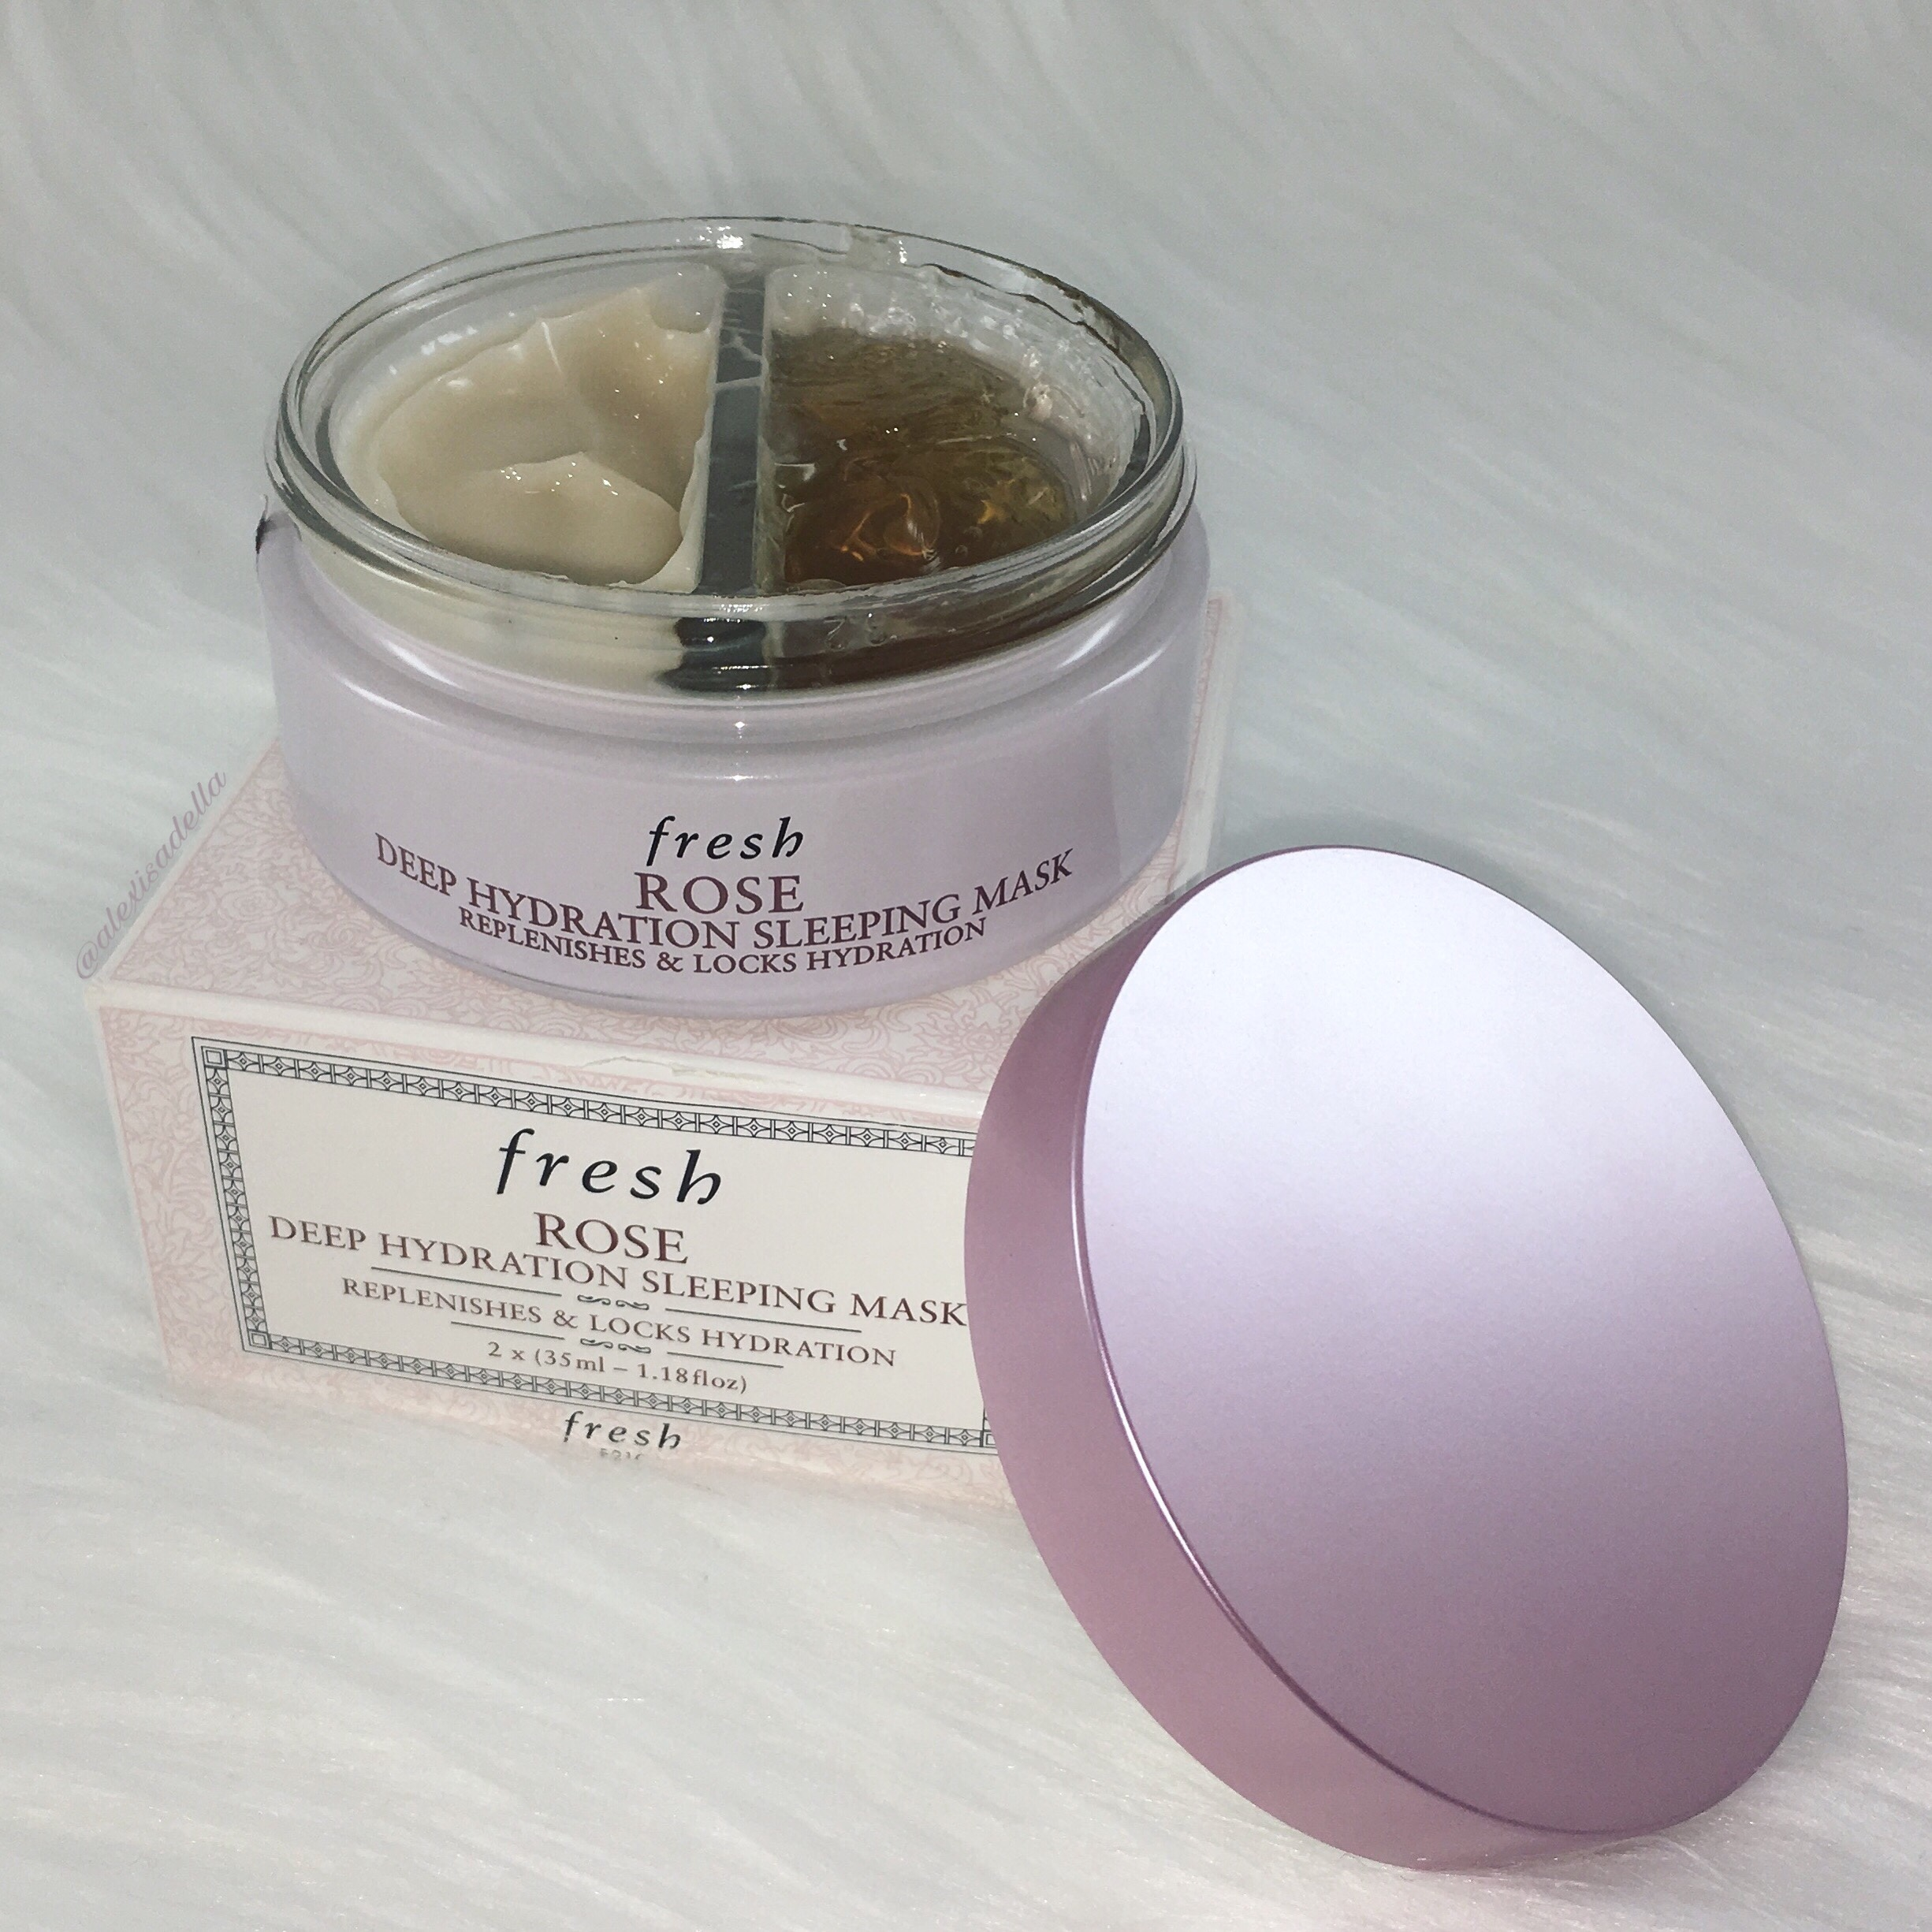 Fresh Beauty Rose Mask Review